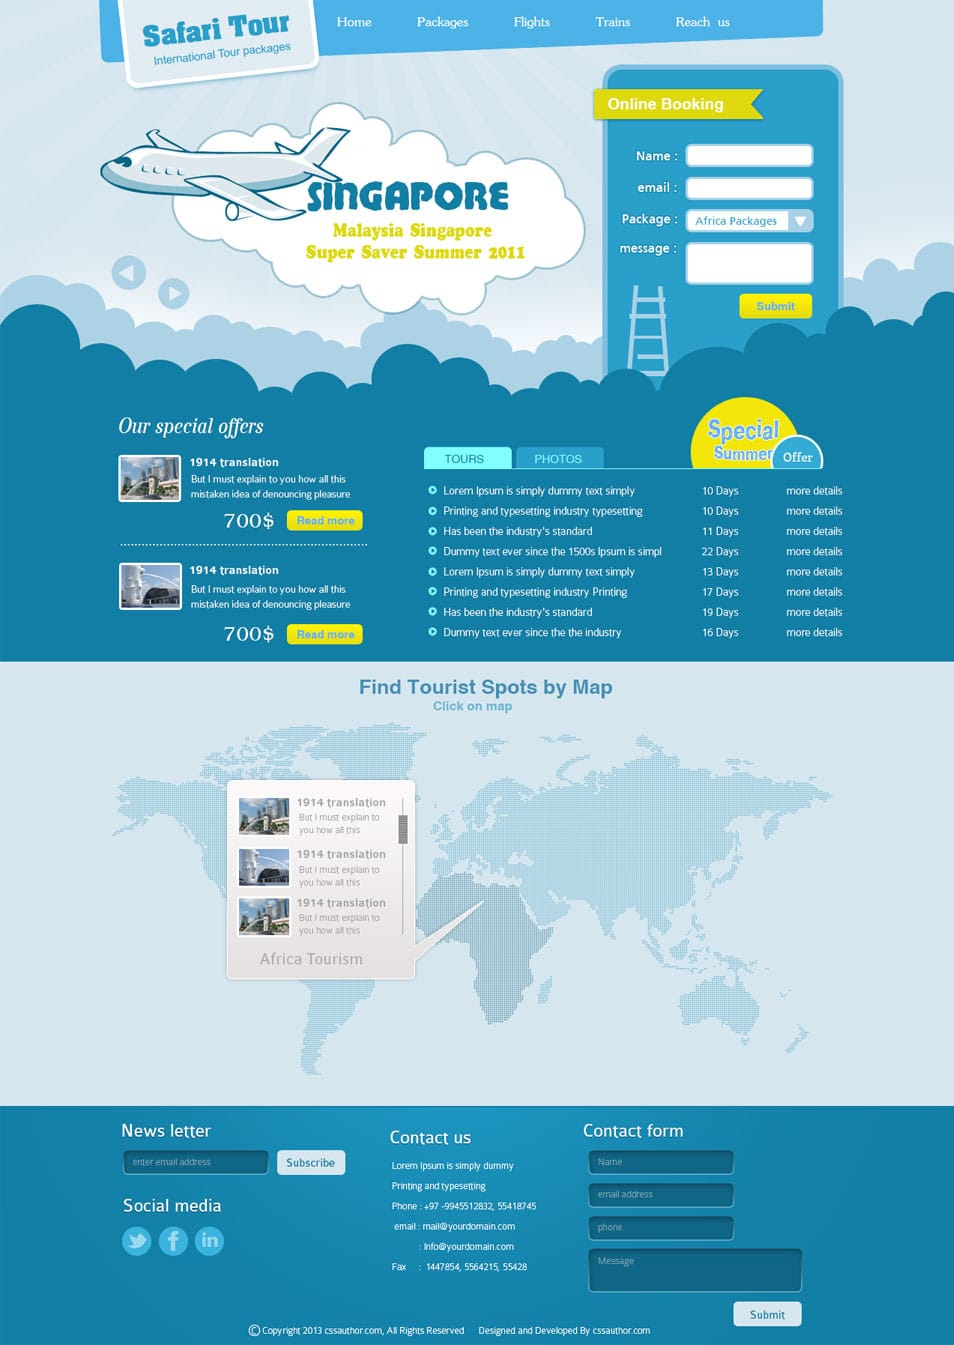 Premium Travel Web design Template PSD - cssauthor.com